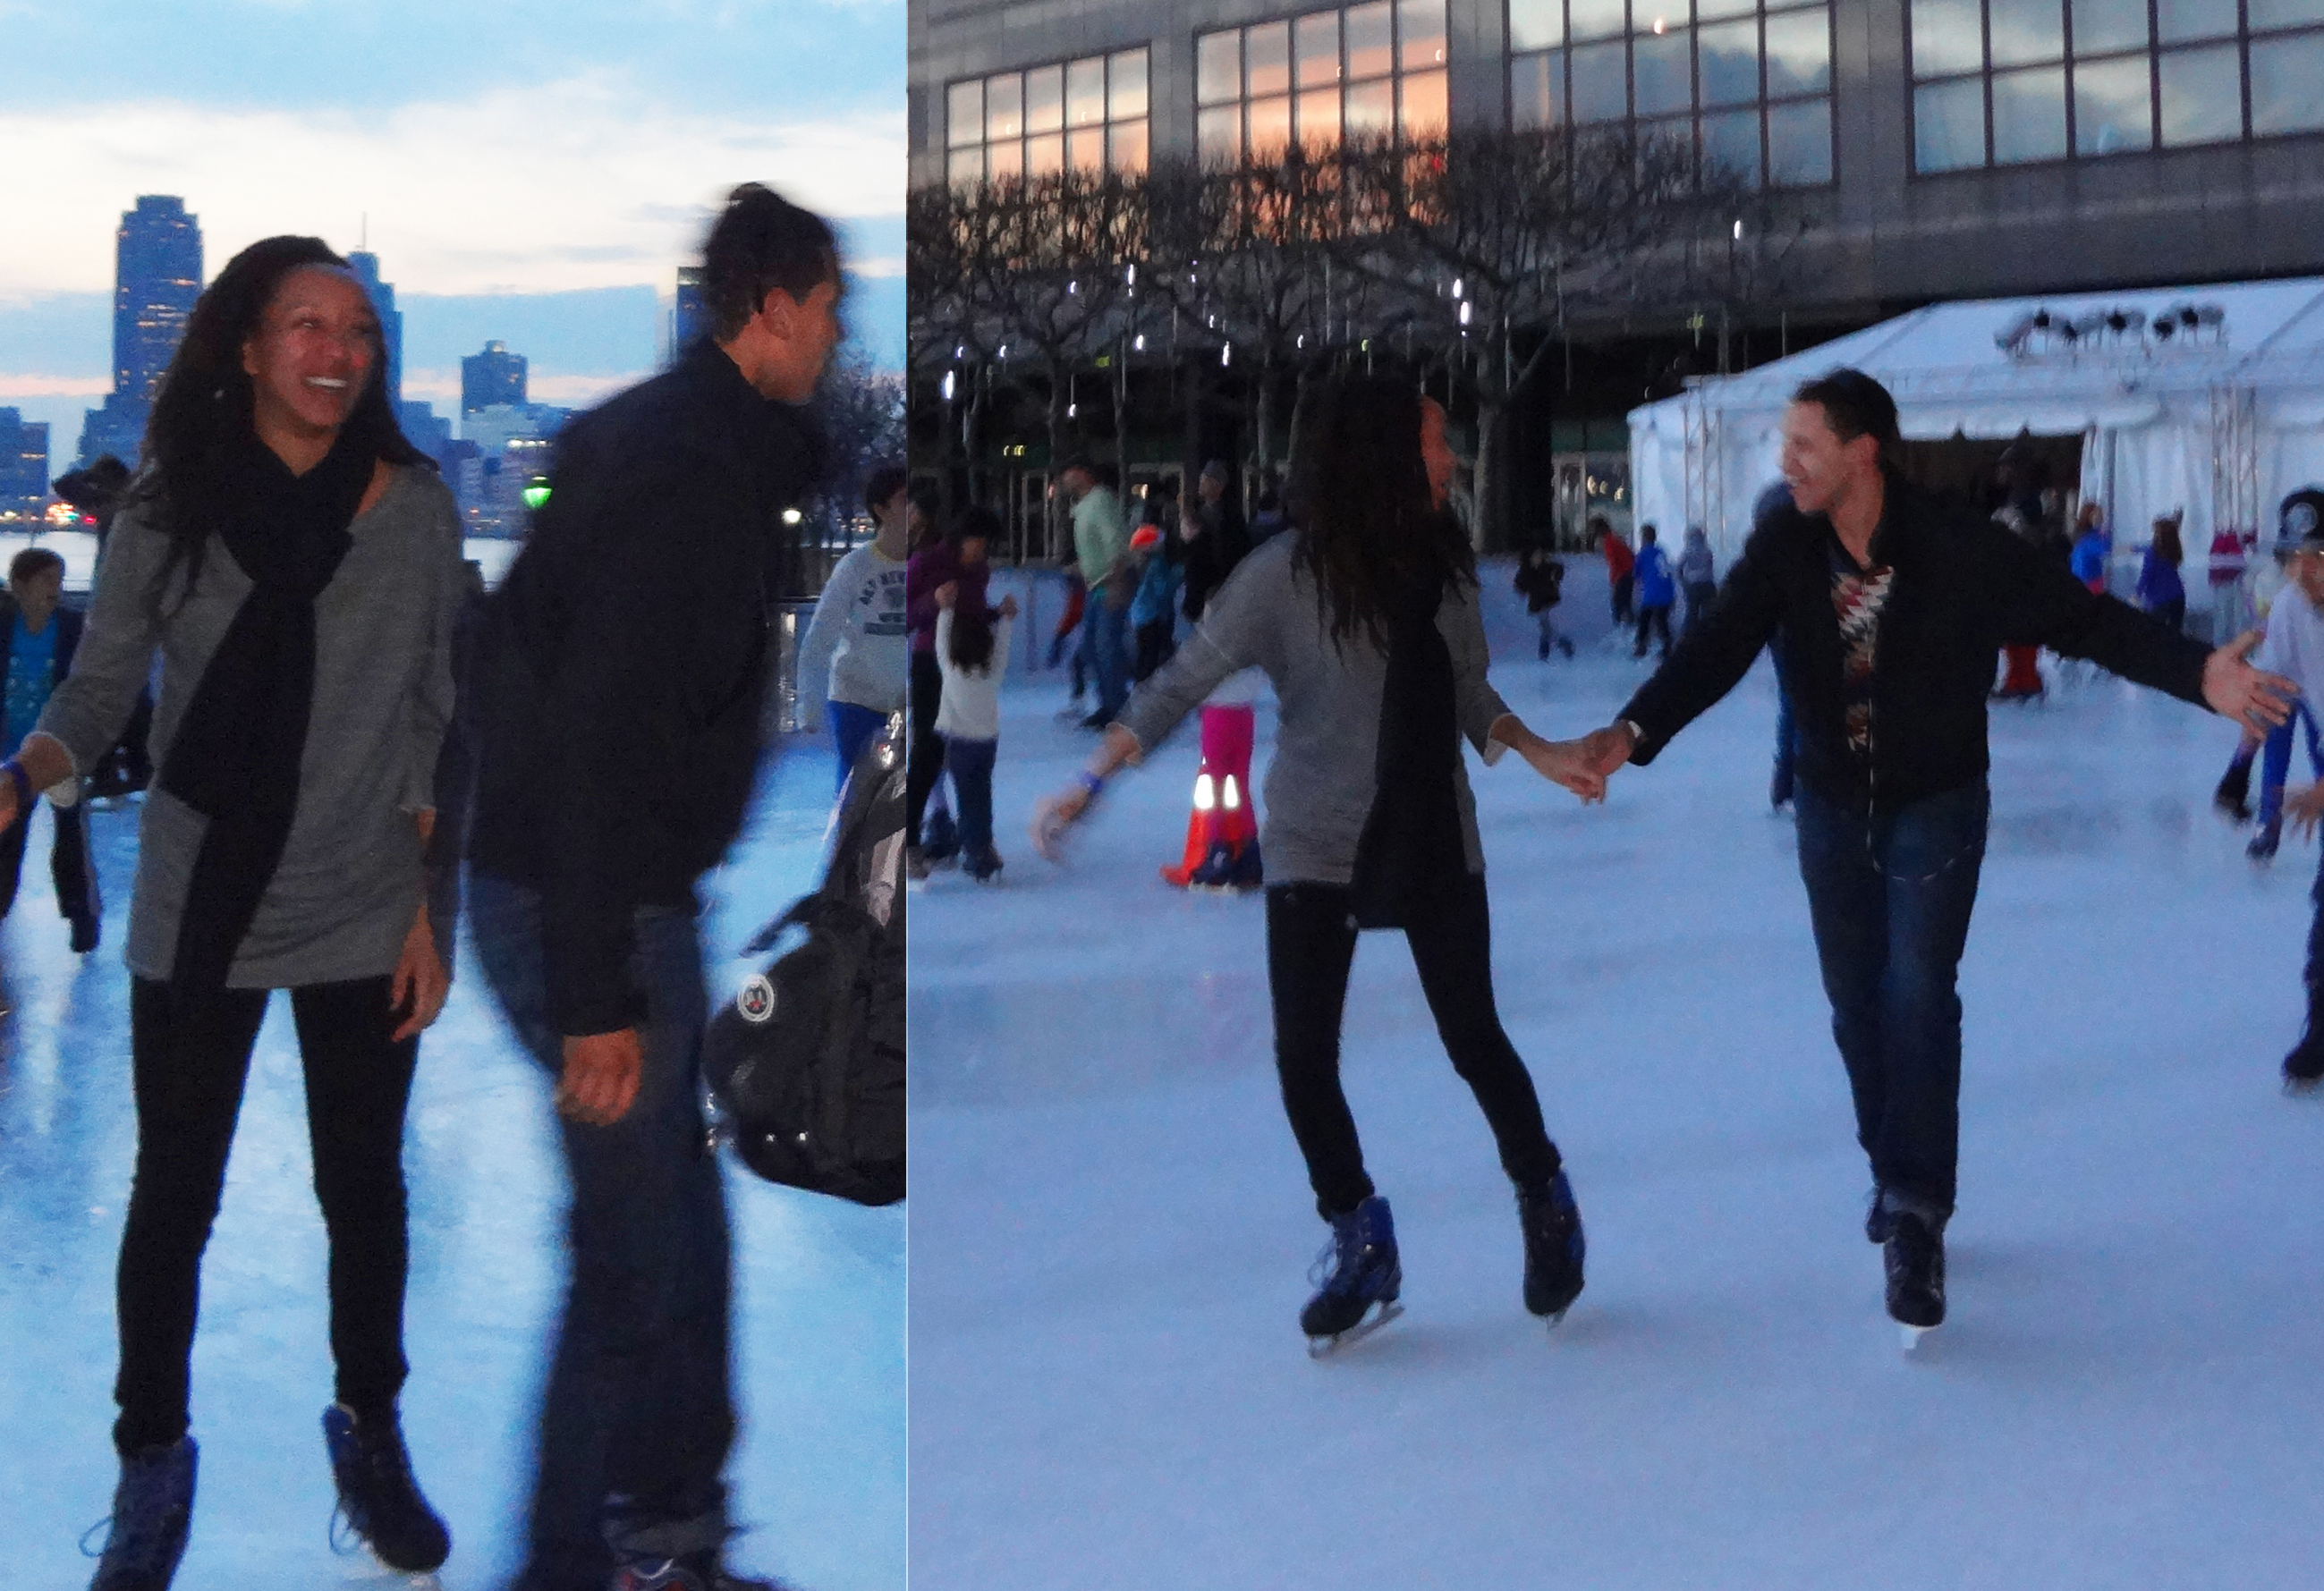 Ice skater woman